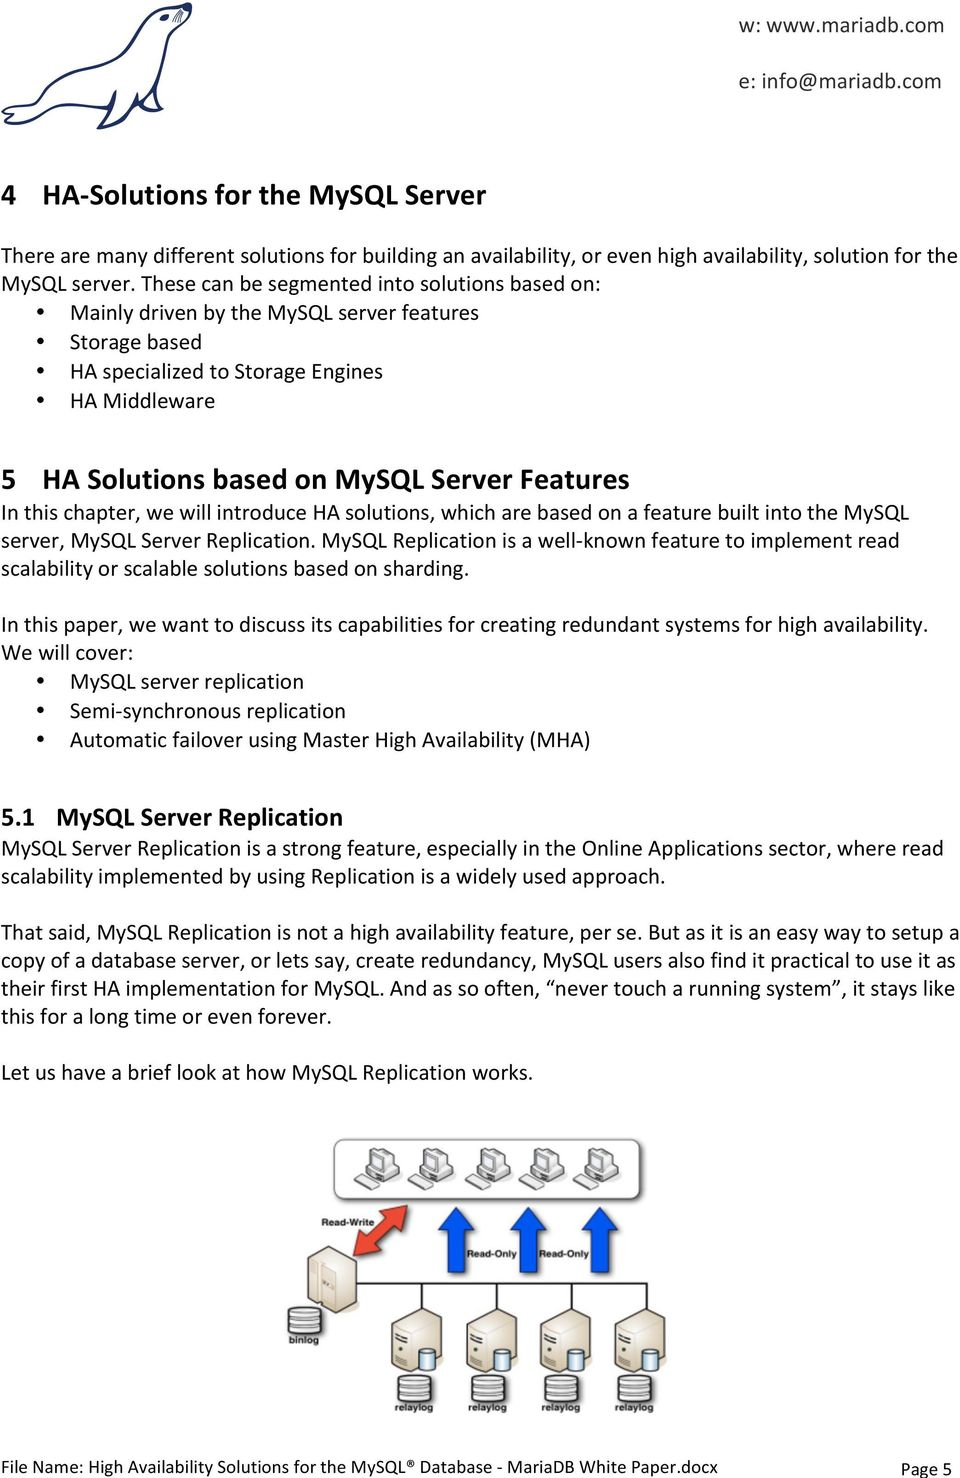 In this chapter, we will introduce HA solutions, which are based on a feature built into the MySQL server, MySQL Server Replication.